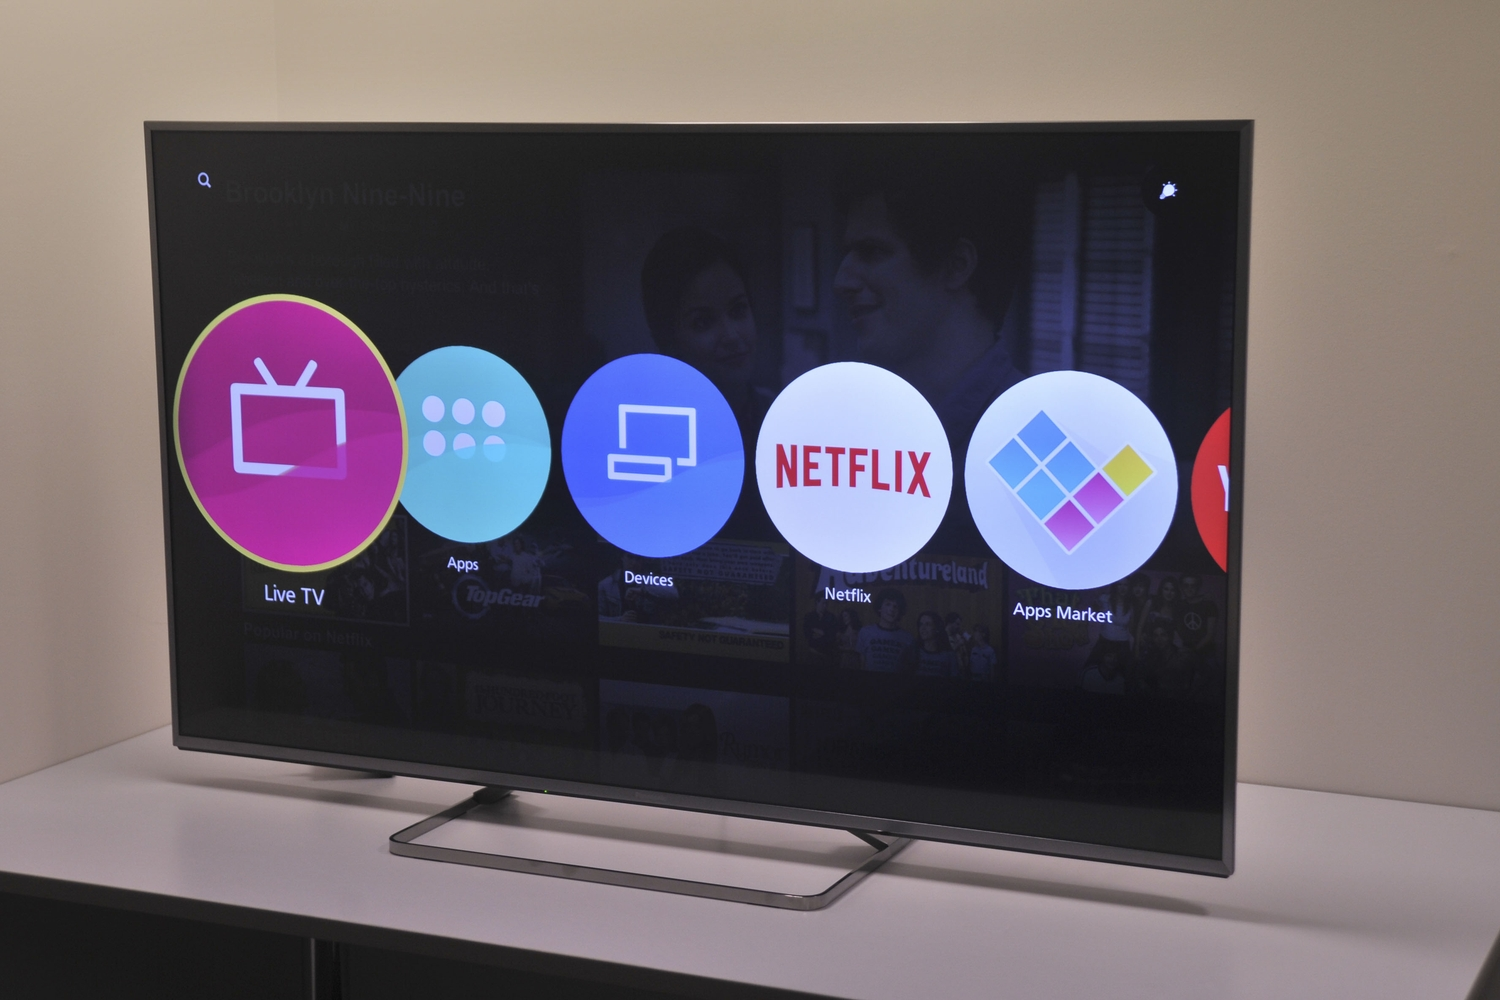 Panasonic Viera 60XC700A Review: Great picture quality let down by